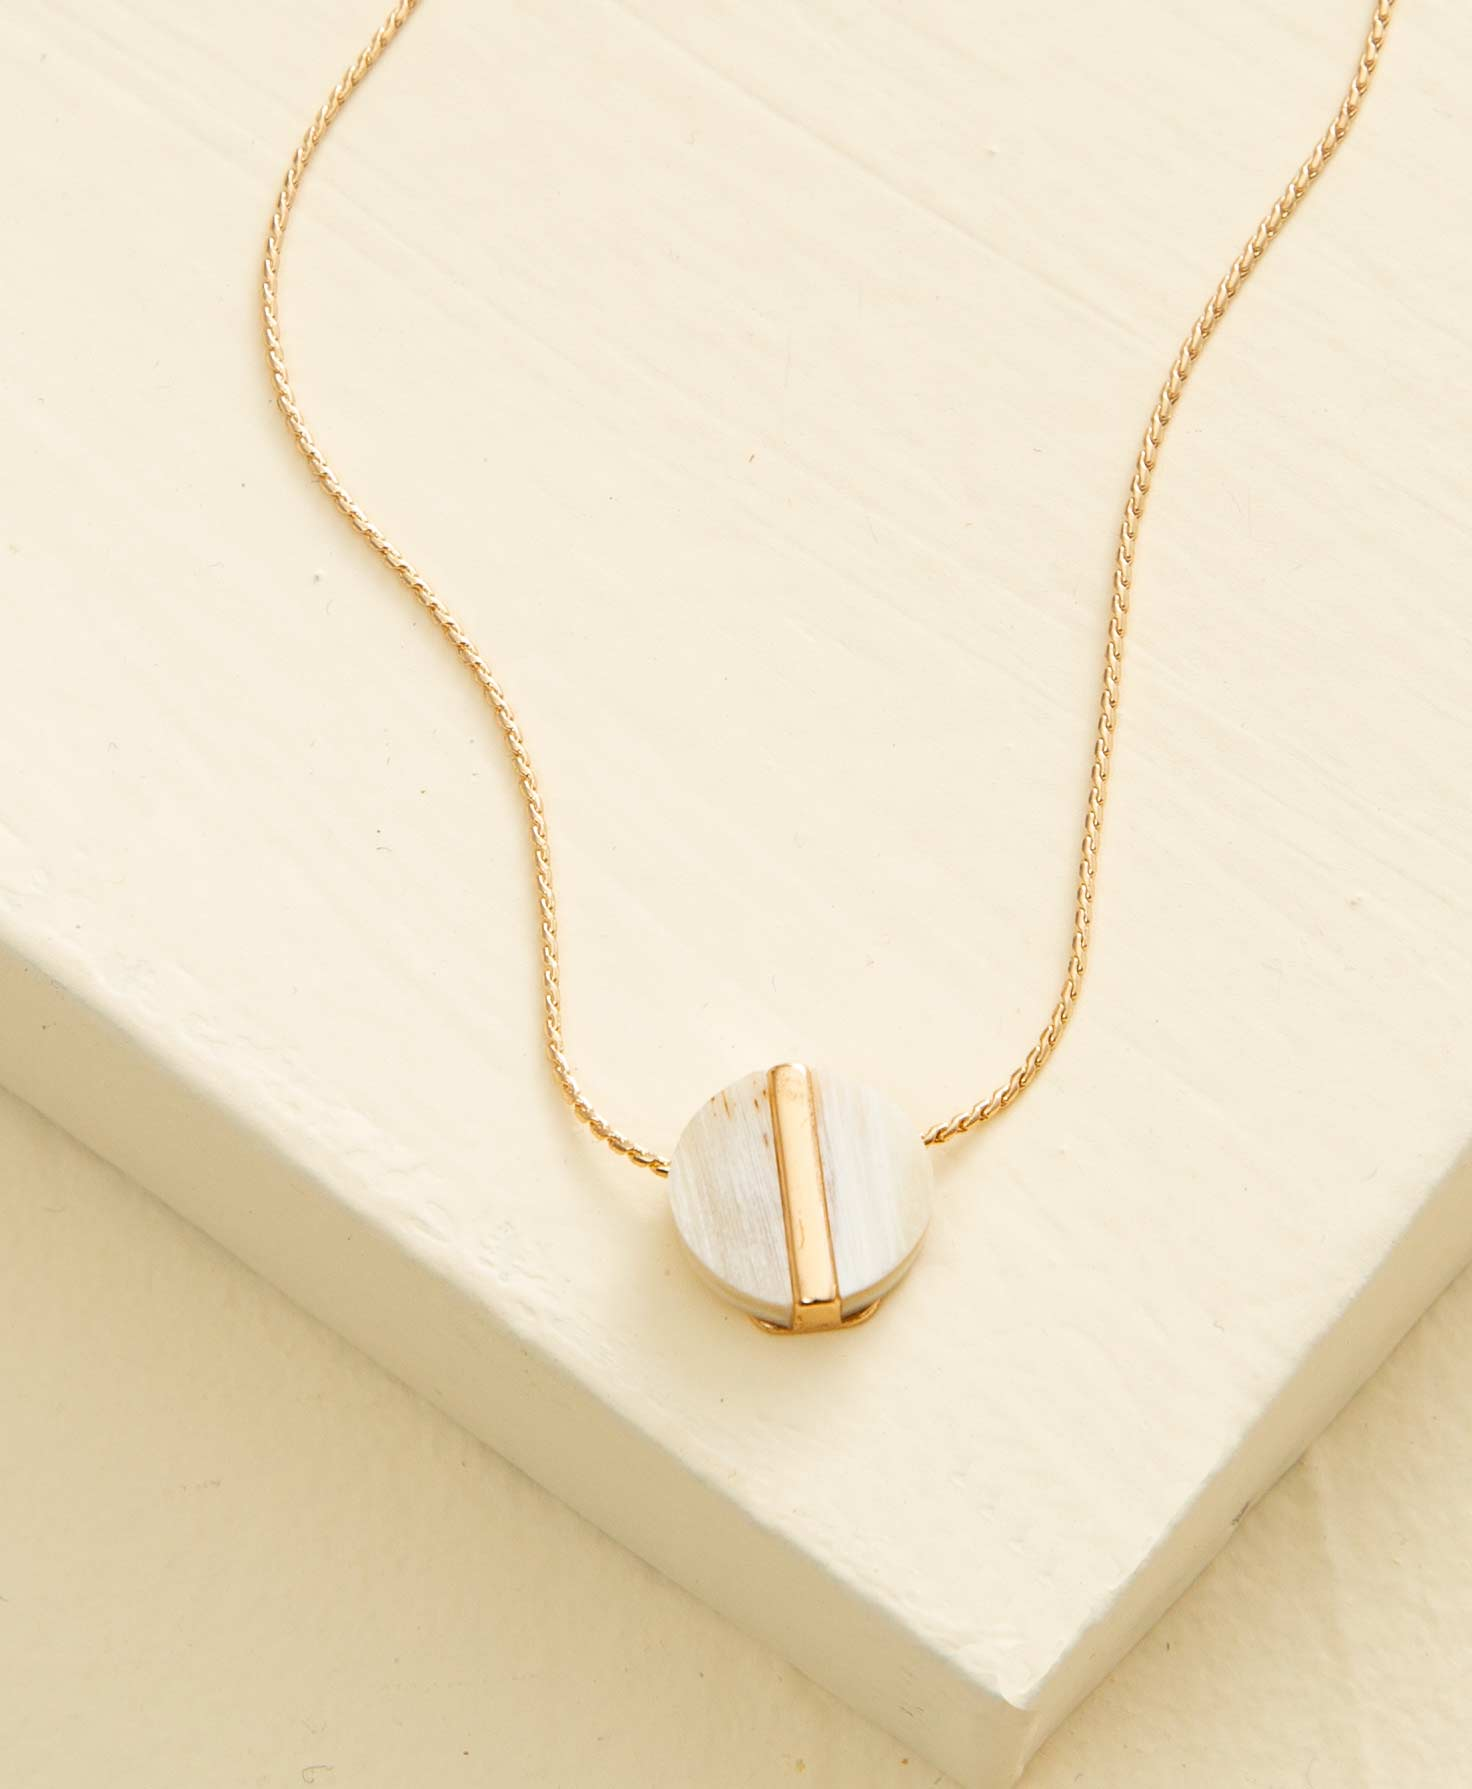 The Geo Necklace, Circle lays on a cream surface. It is a dainty necklace featuring a small, circular charm hanging from a gold chain. The charm is made of cream-colored horn with natural striations, and has a gold metal bar running vertically through its center.